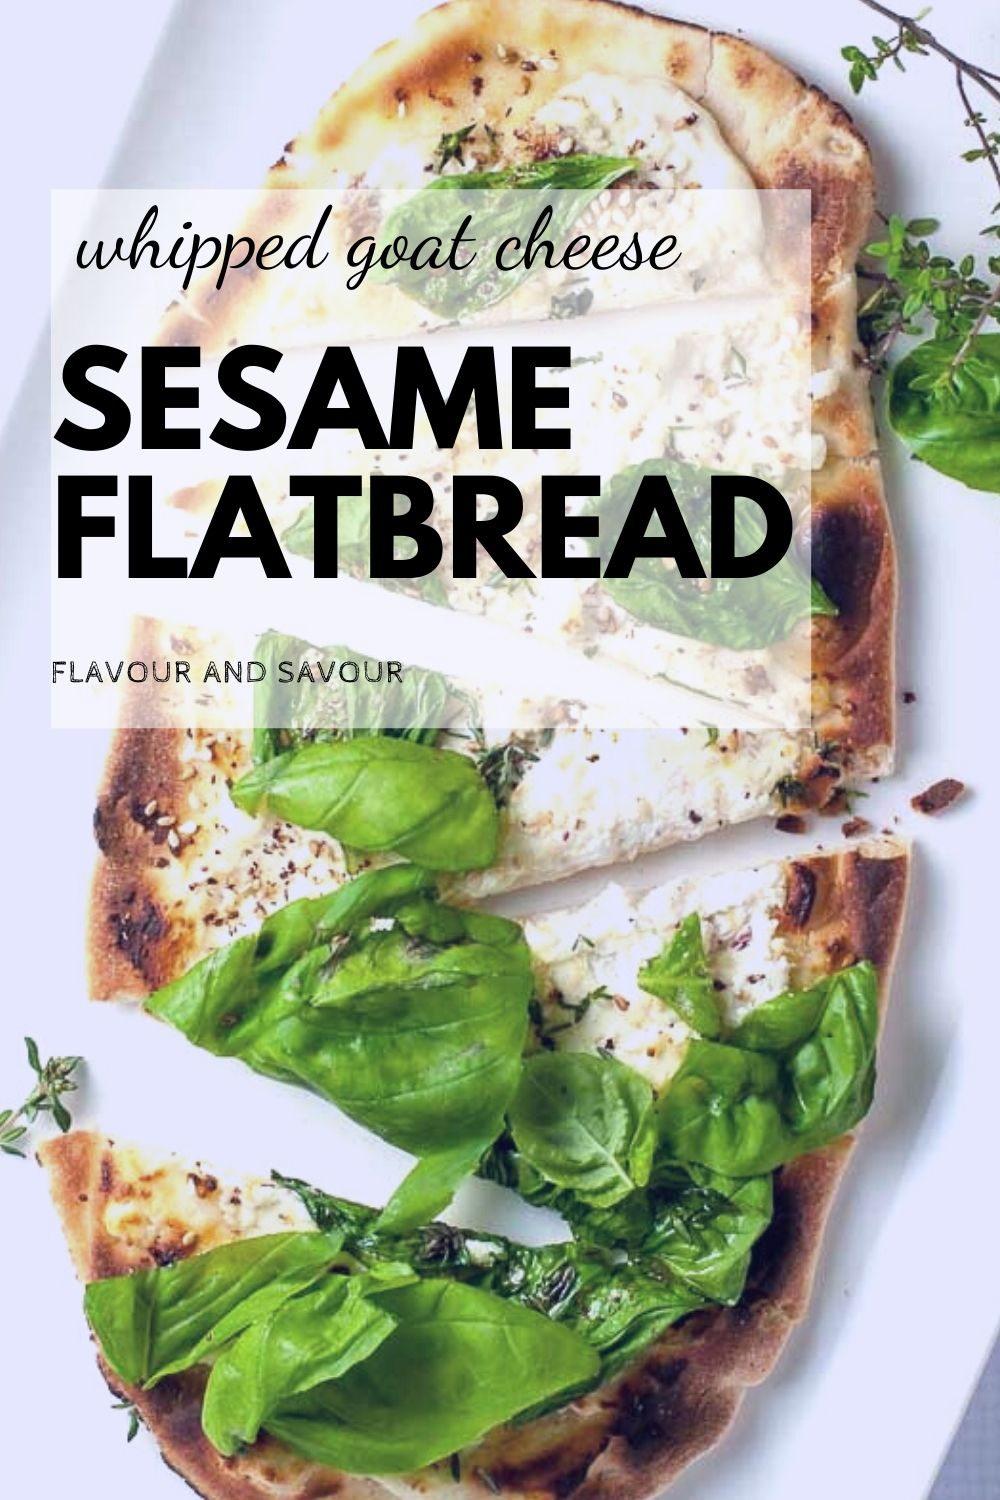 Pinterest Pin for Whipped Goat Cheese Sesame Flatbread with Za'atar